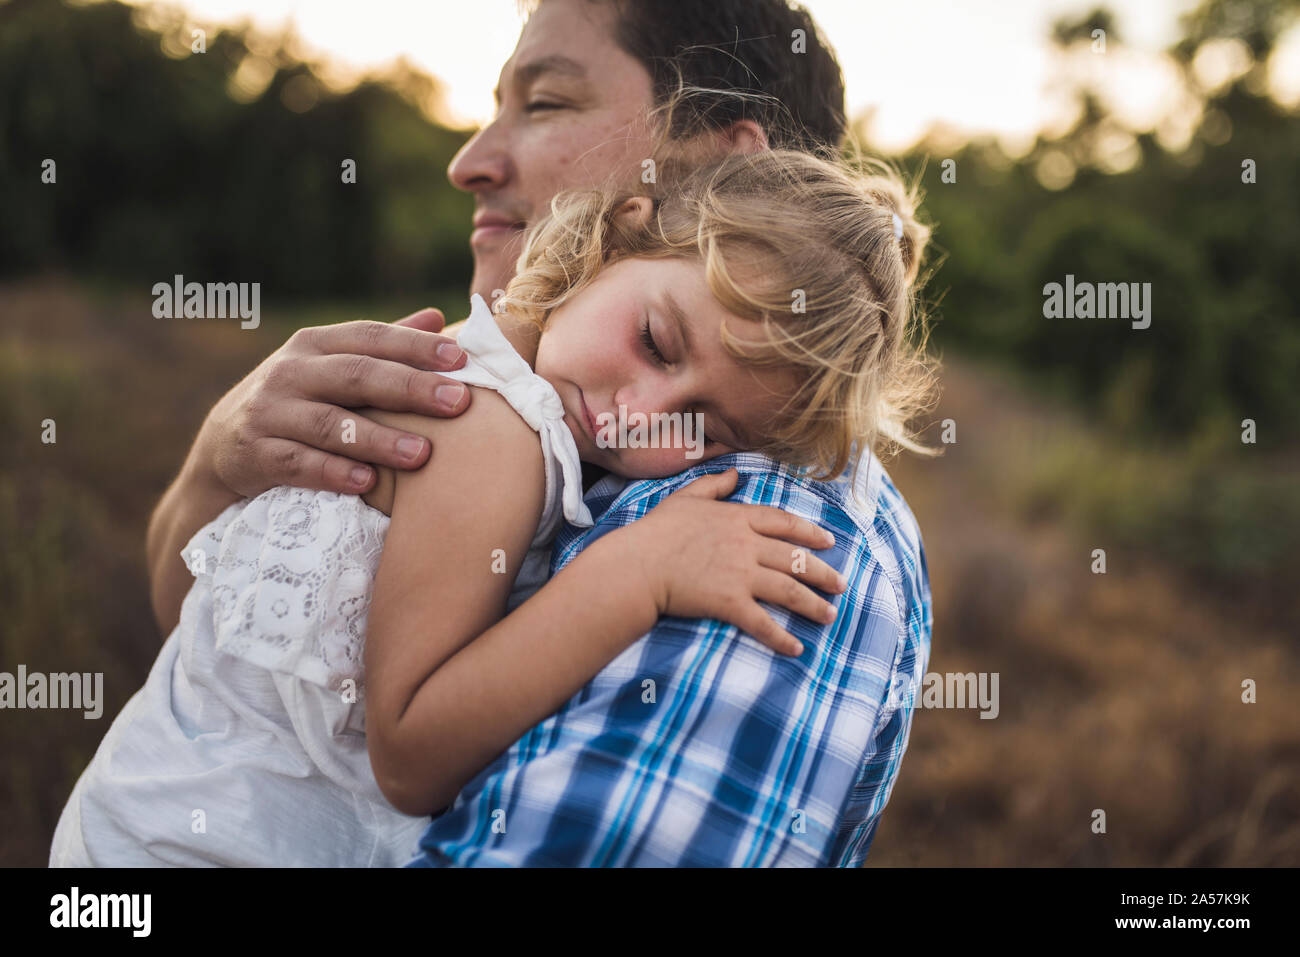 4 yr old girl asleep on her dad' shoulder - B/W photo Stock Photo